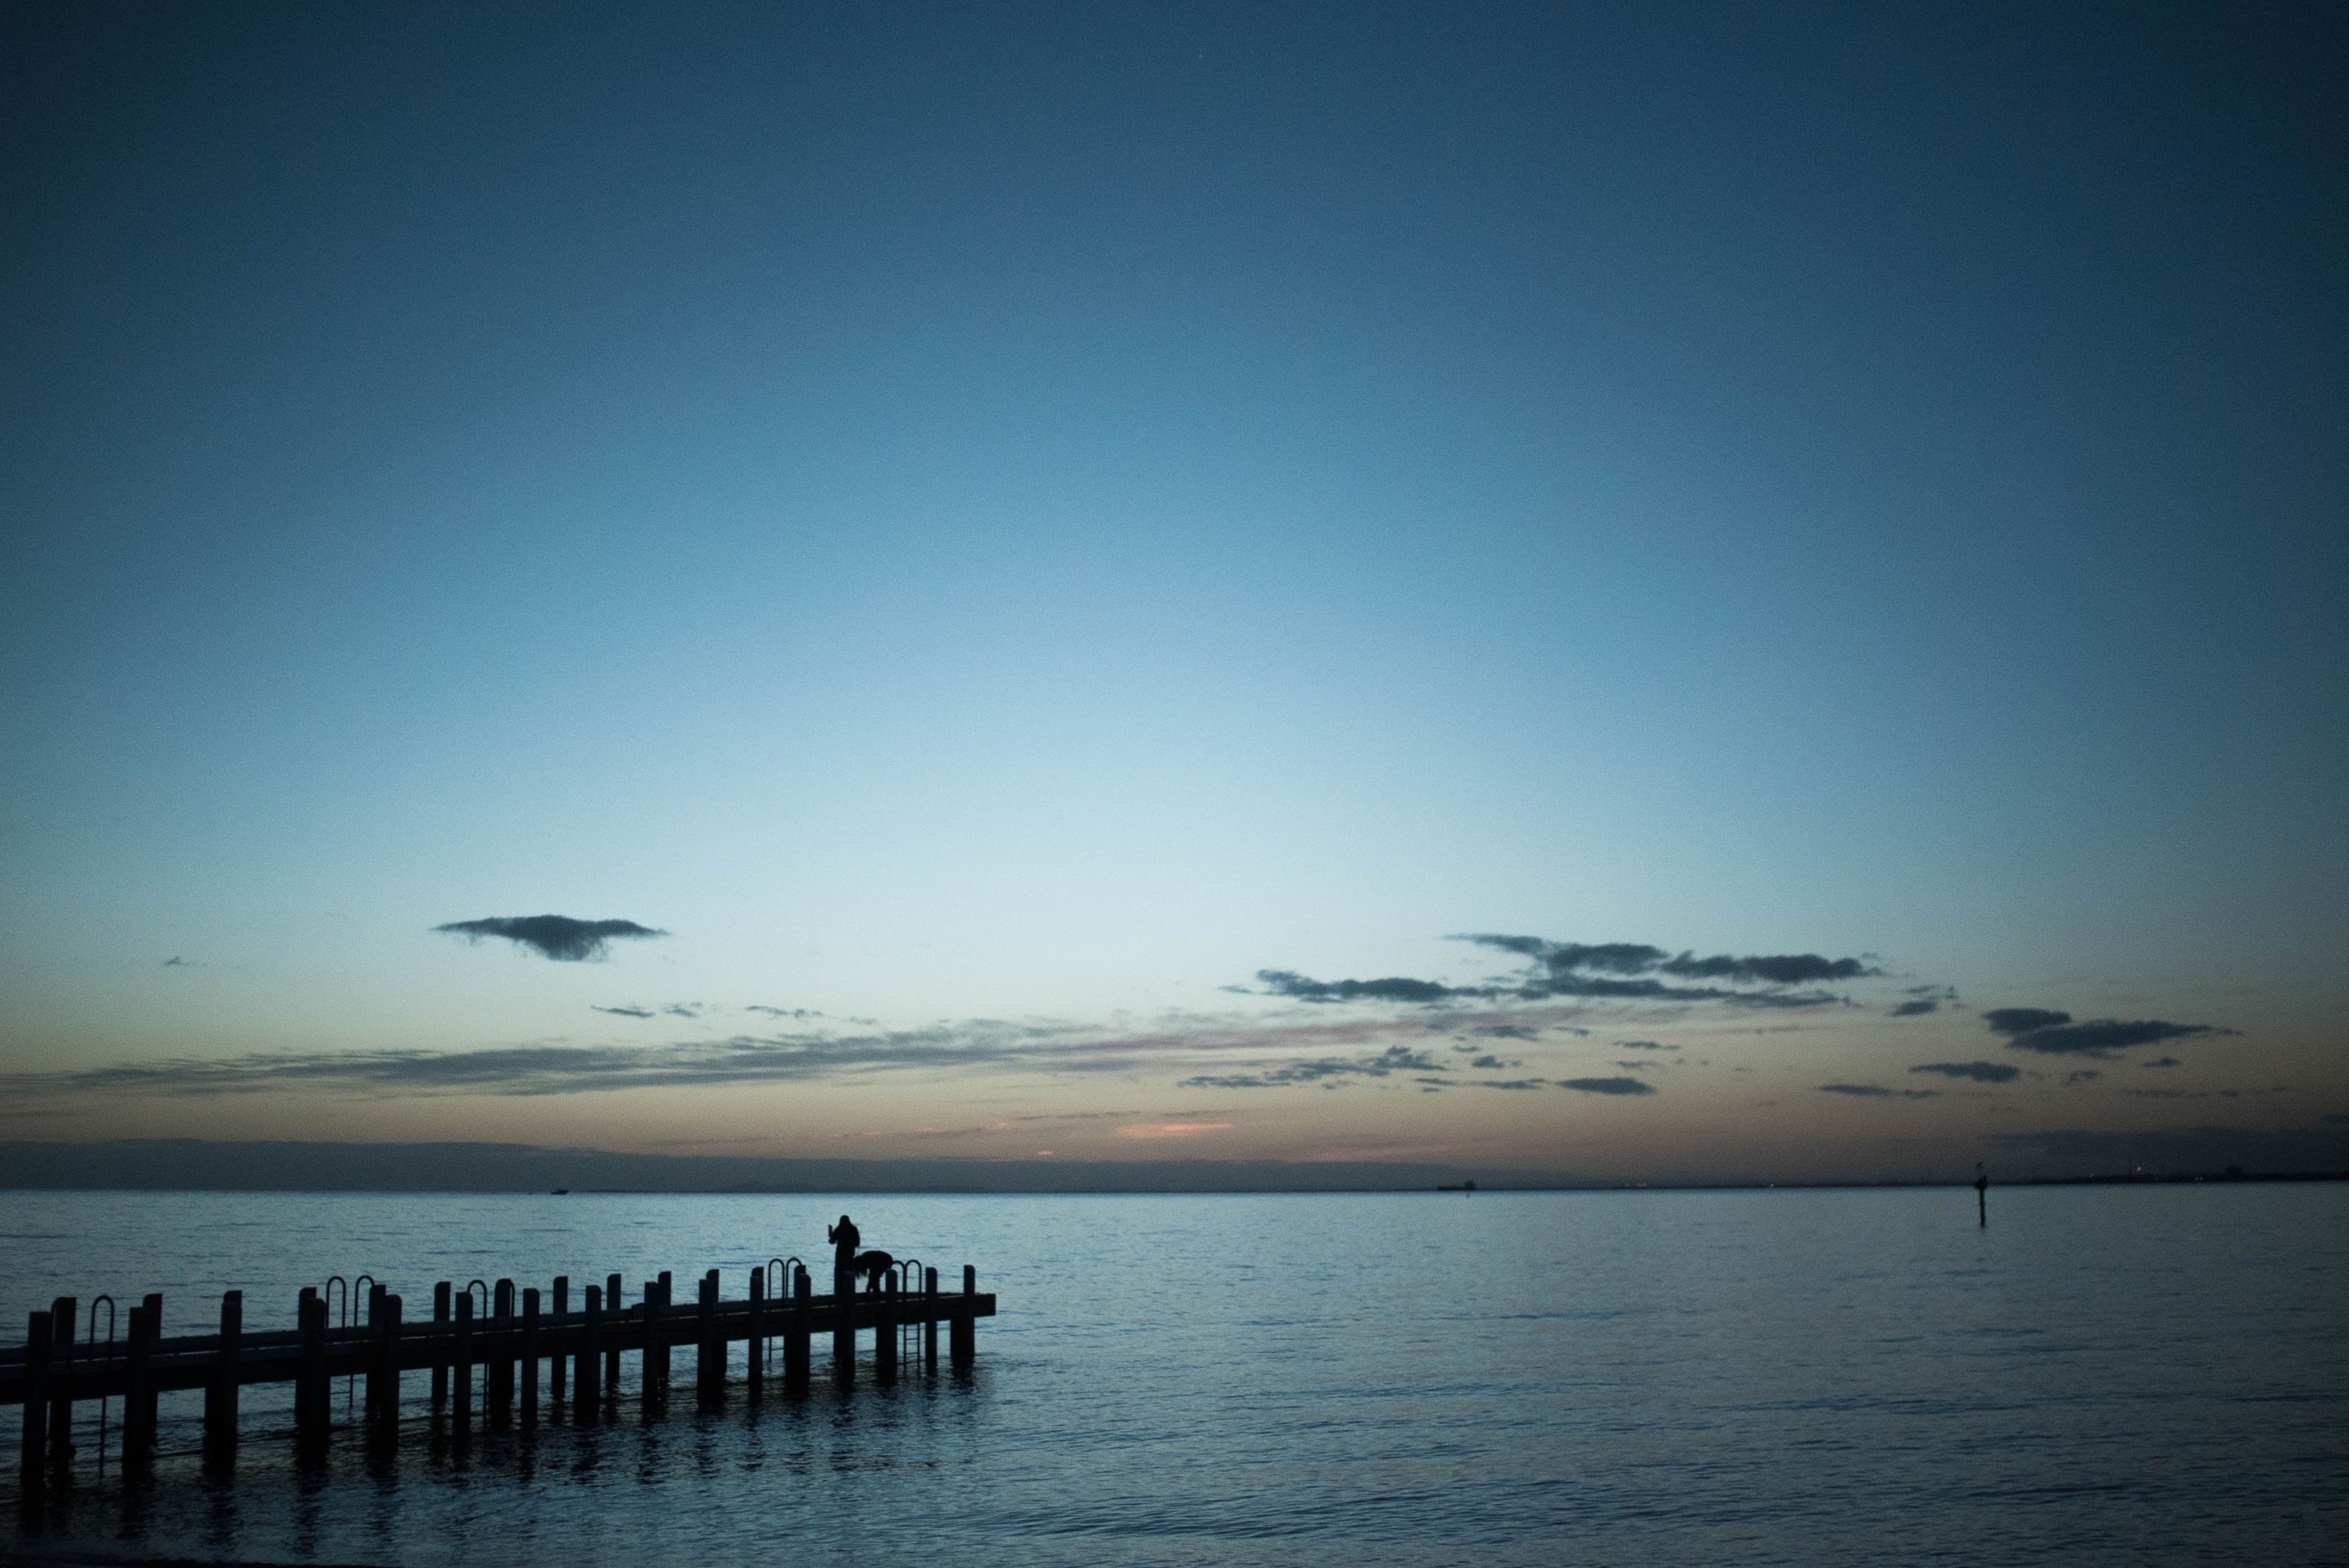 sea, water, horizon over water, pier, tranquility, tranquil scene, scenics, vacations, waterfront, dusk, calm, beauty in nature, idyllic, atmosphere, jetty, ocean, sky, nature, seascape, distant, cloud, tourism, remote, no people, non-urban scene